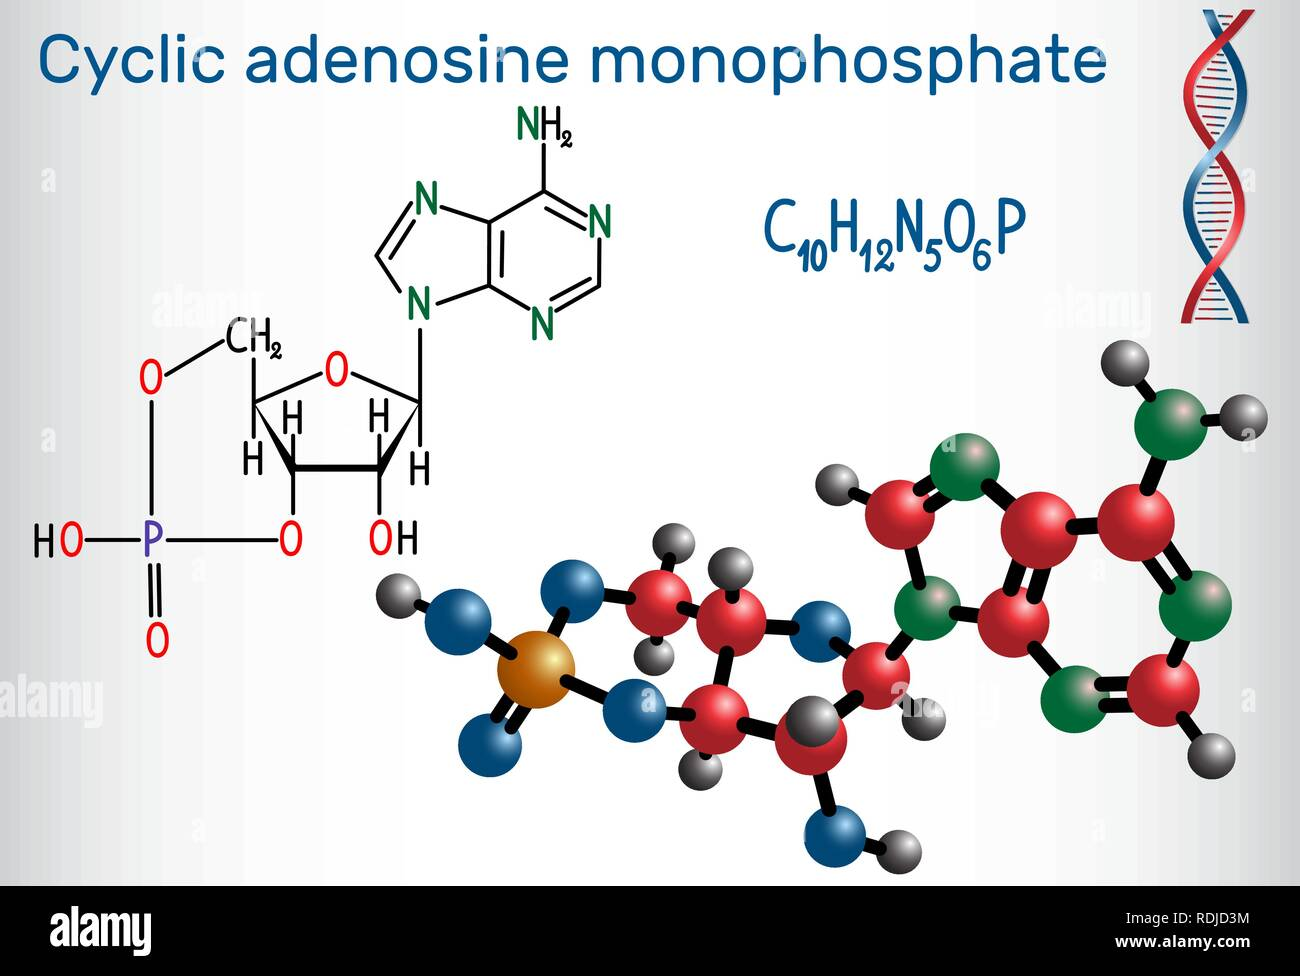 Cyclic adenosine monophosphate (cAMP) molecule, it is a derivative of adenosine triphosphate (ATP) and used for intracellular signal transduction . St Stock Vector